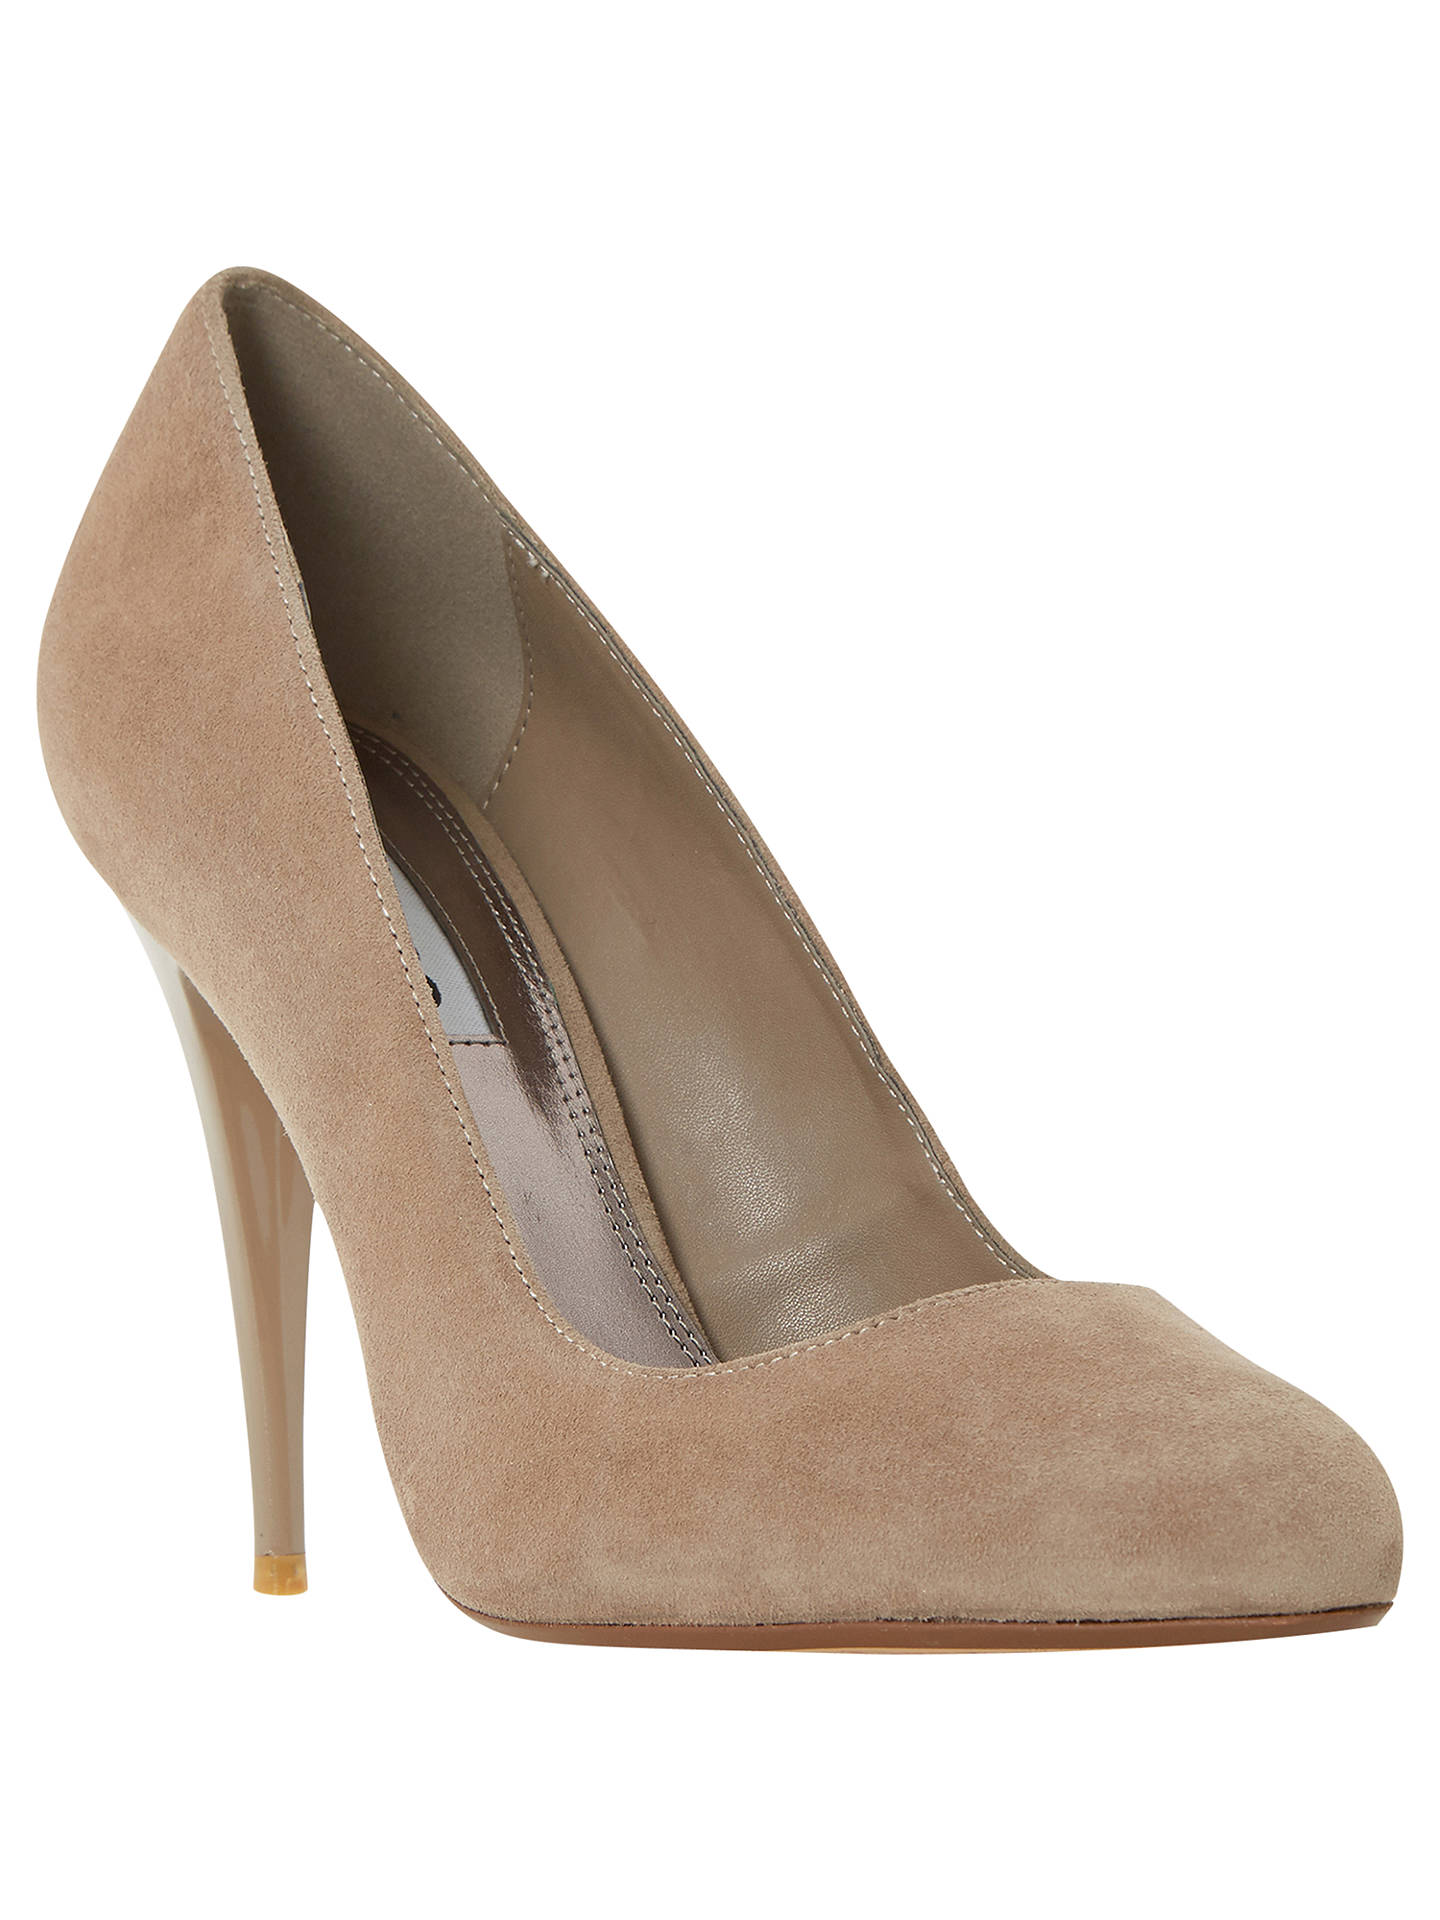 c2f508214e3 Dune Angelica High Heeled Stiletto Court Shoes at John Lewis & Partners